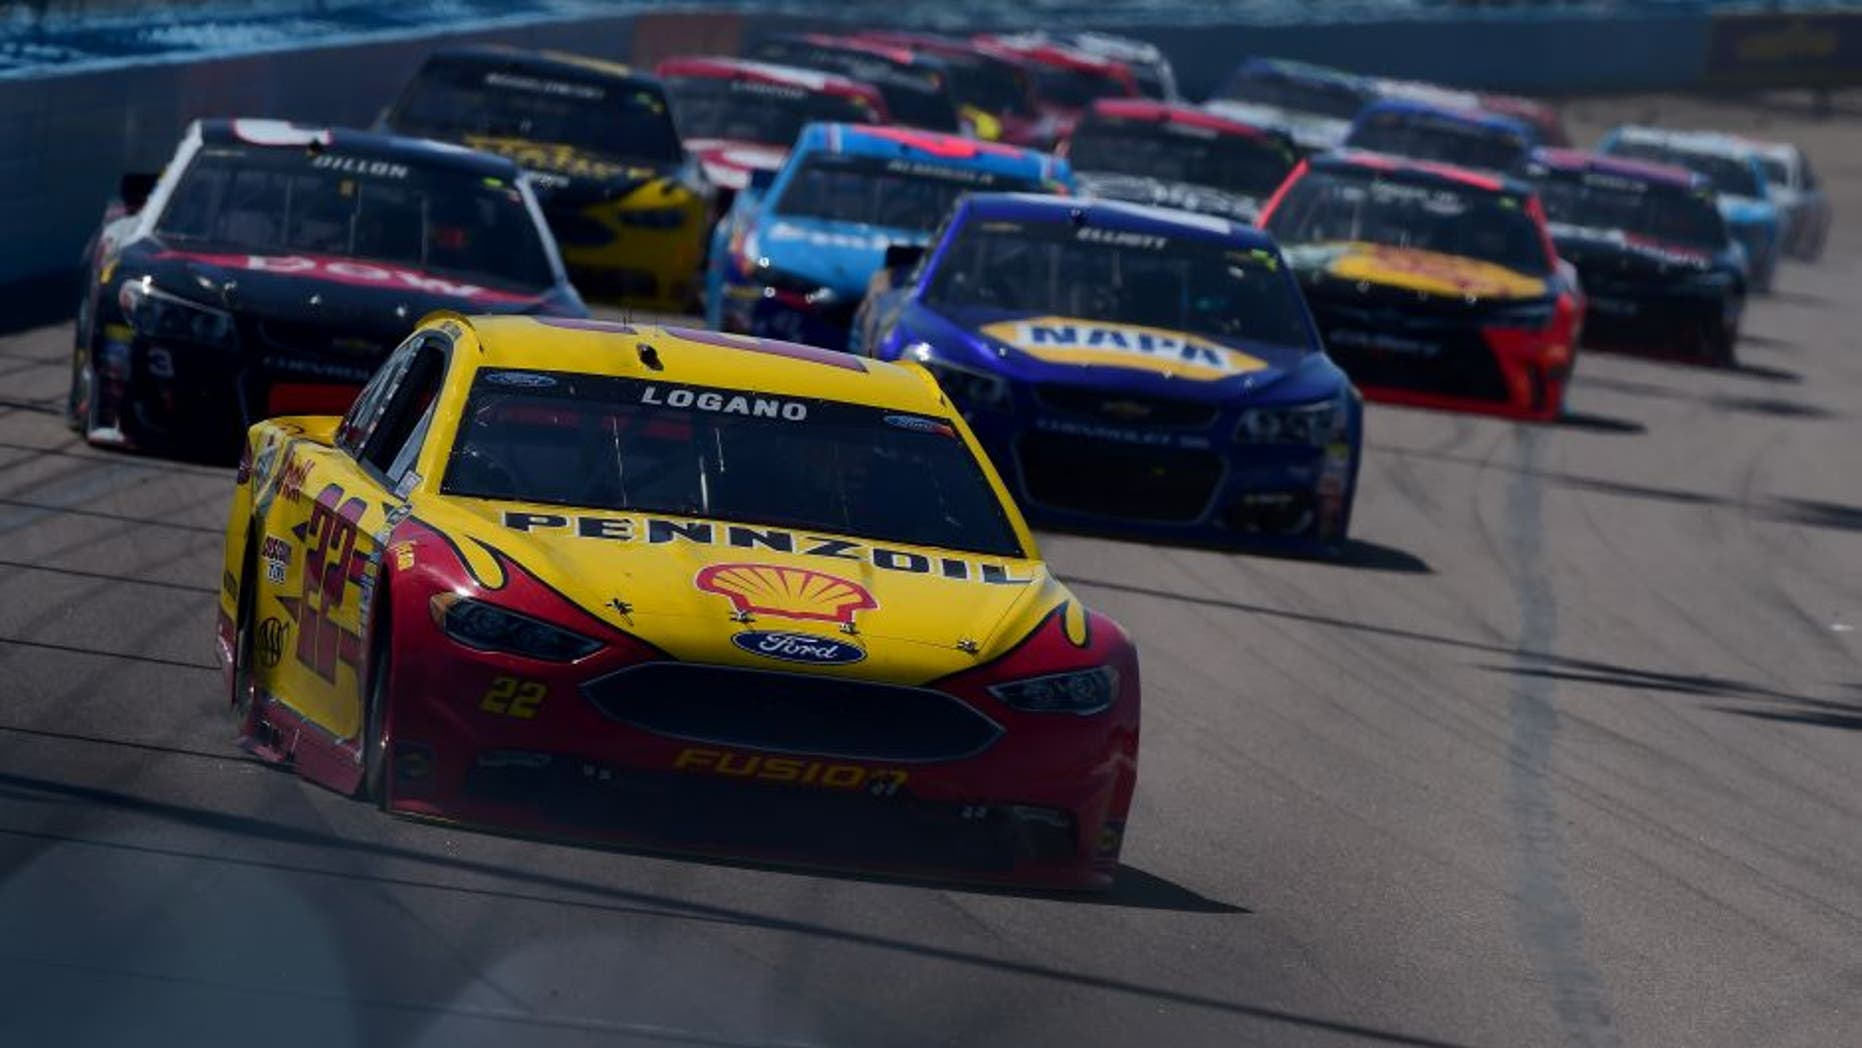 AVONDALE, AZ - MARCH 13: Joey Logano, driver of the #22 Pennzoil Ford, leads a pack of cars during the NASCAR Sprint Cup Series Good Sam 500 at Phoenix International Raceway on March 13, 2016 in Avondale, Arizona. (Photo by Jared C. Tilton/Getty Images)